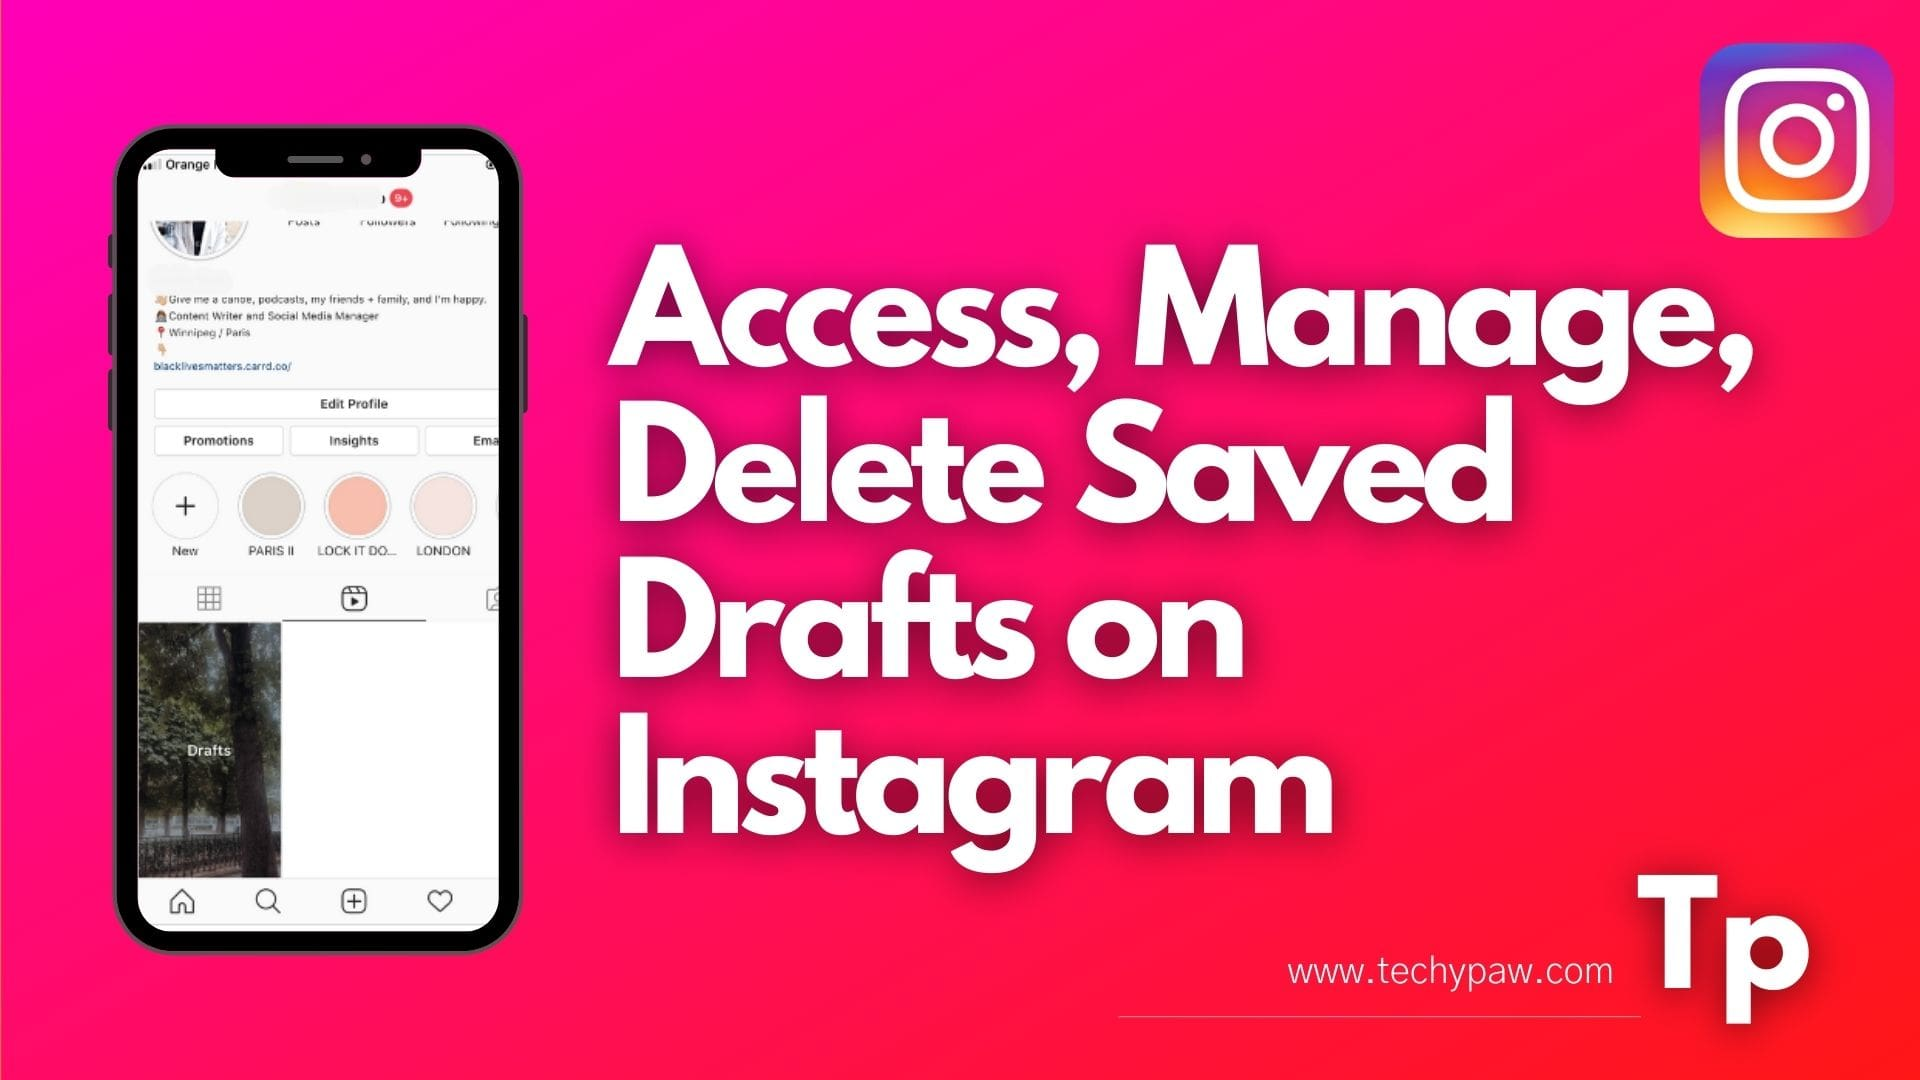 How to Access, Manage, Delete Saved Drafts on Instagram?